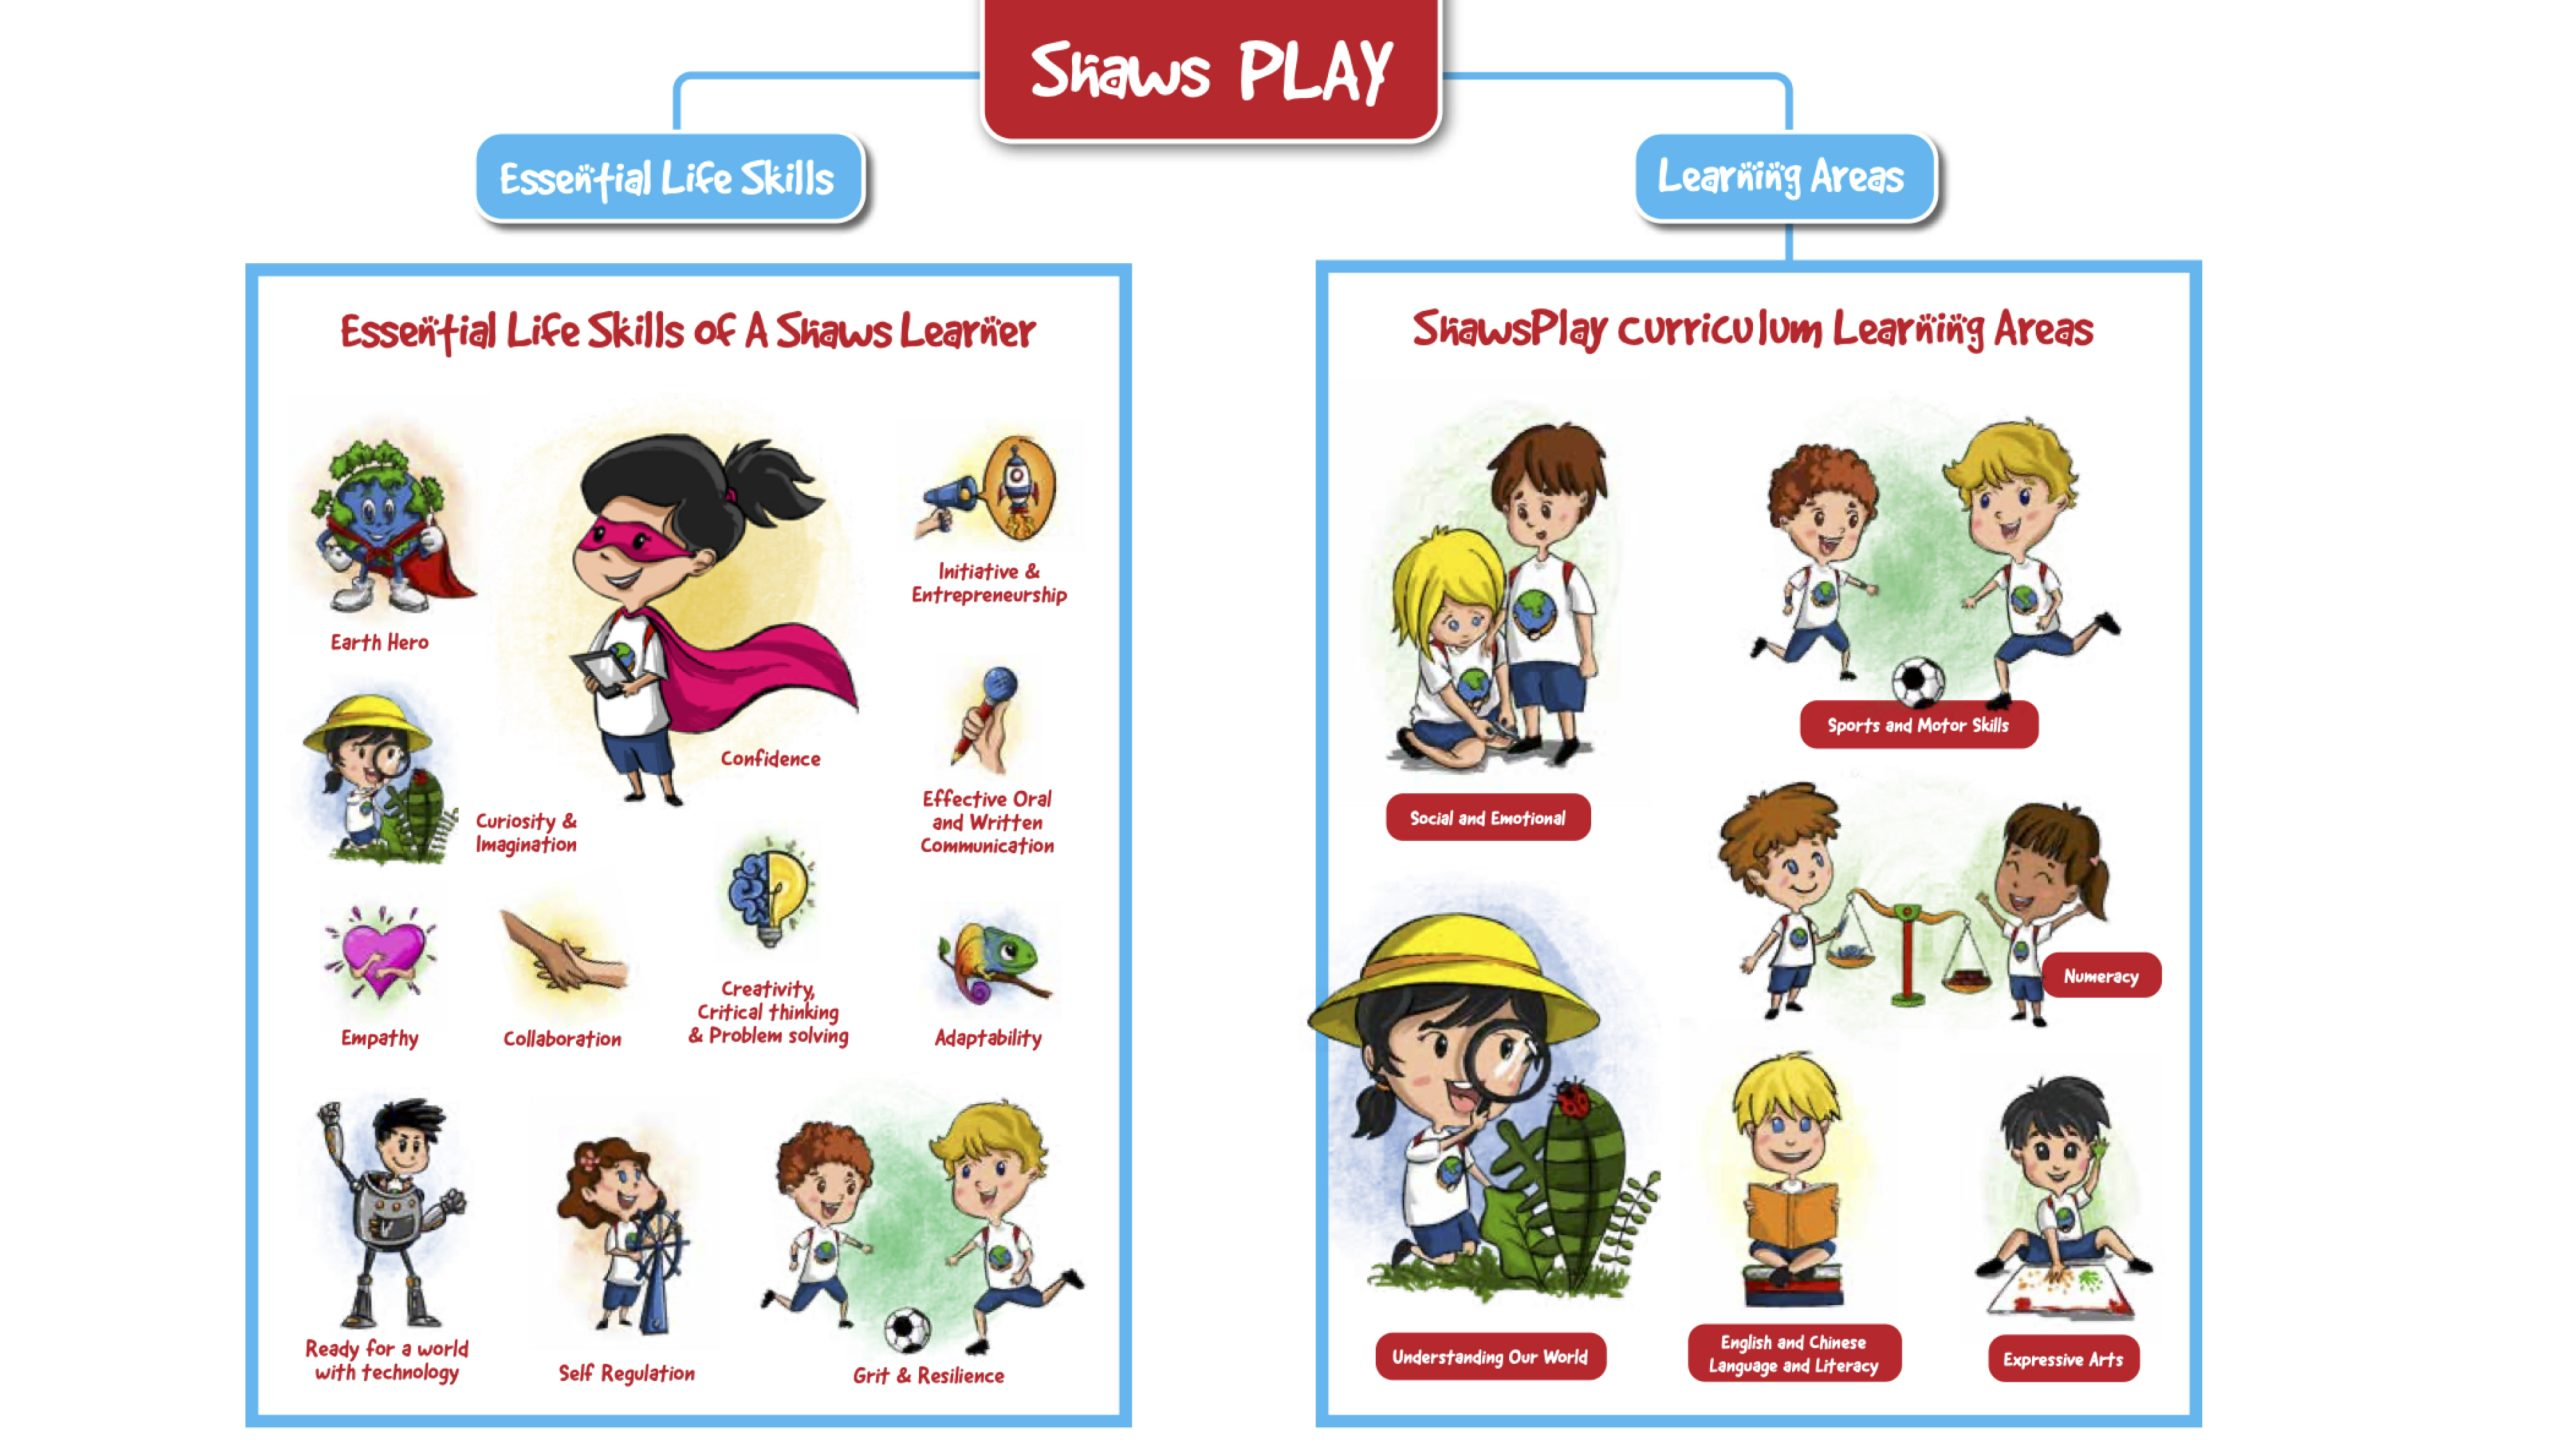 Shaws Play - Essential Life Skills and Learning Areas